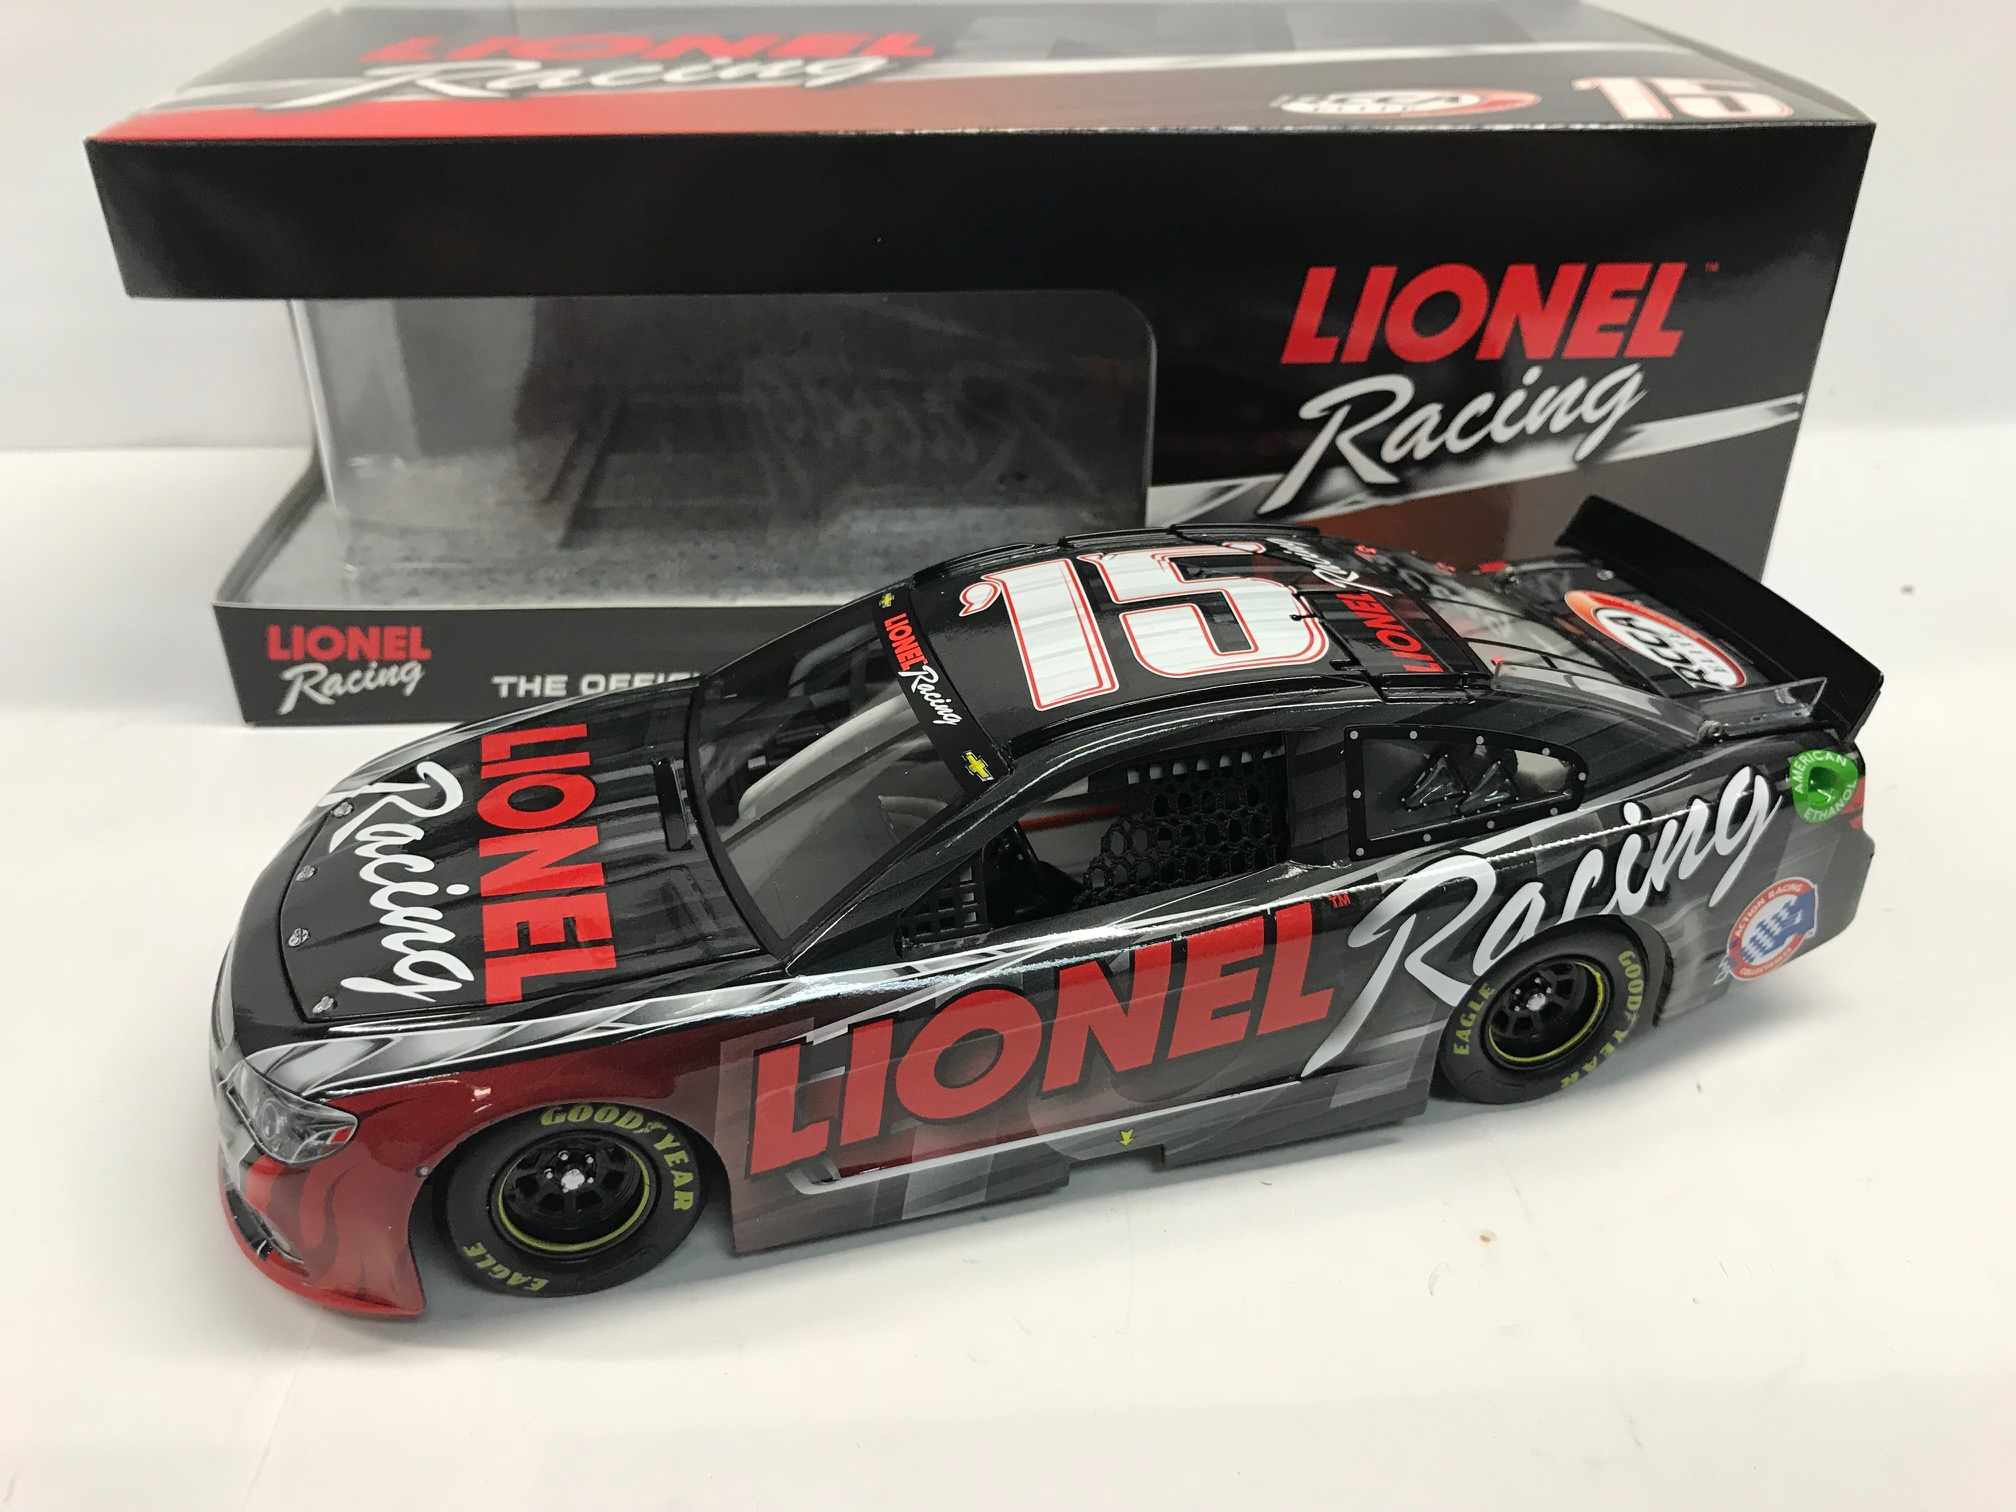 LIONEL RACING 2015 ANNOUNCEMENT 1:24-SCALE DIECAST